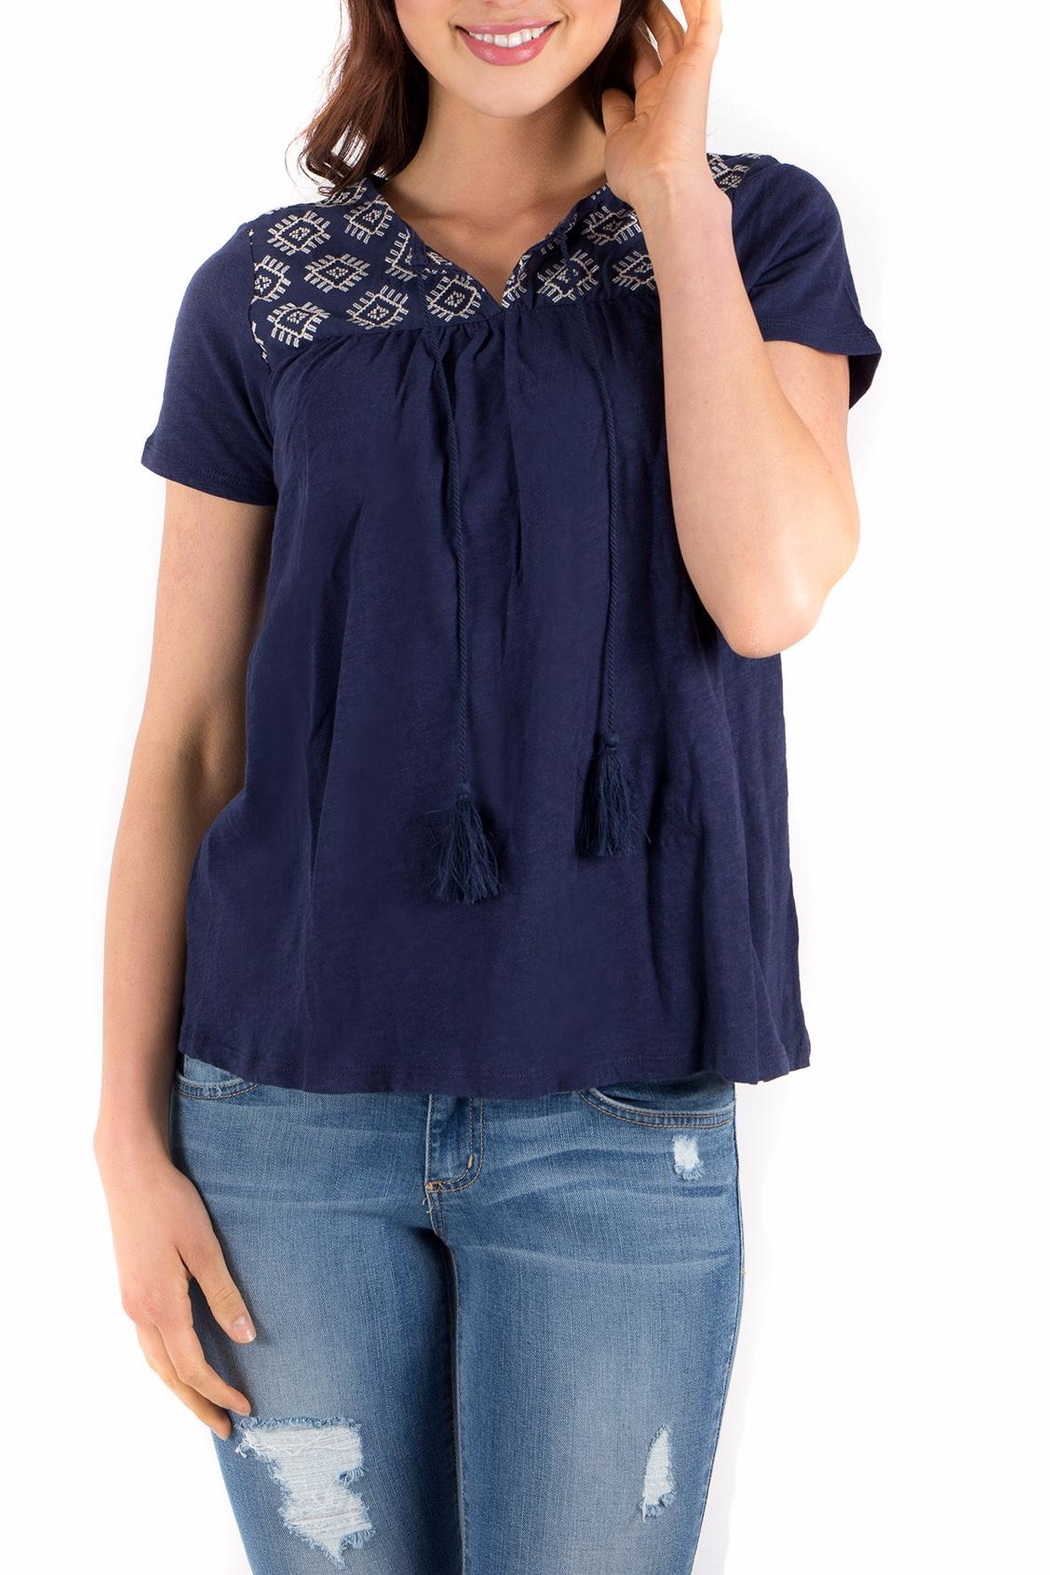 Downeast Basics Farsyth Top - Front Cropped Image